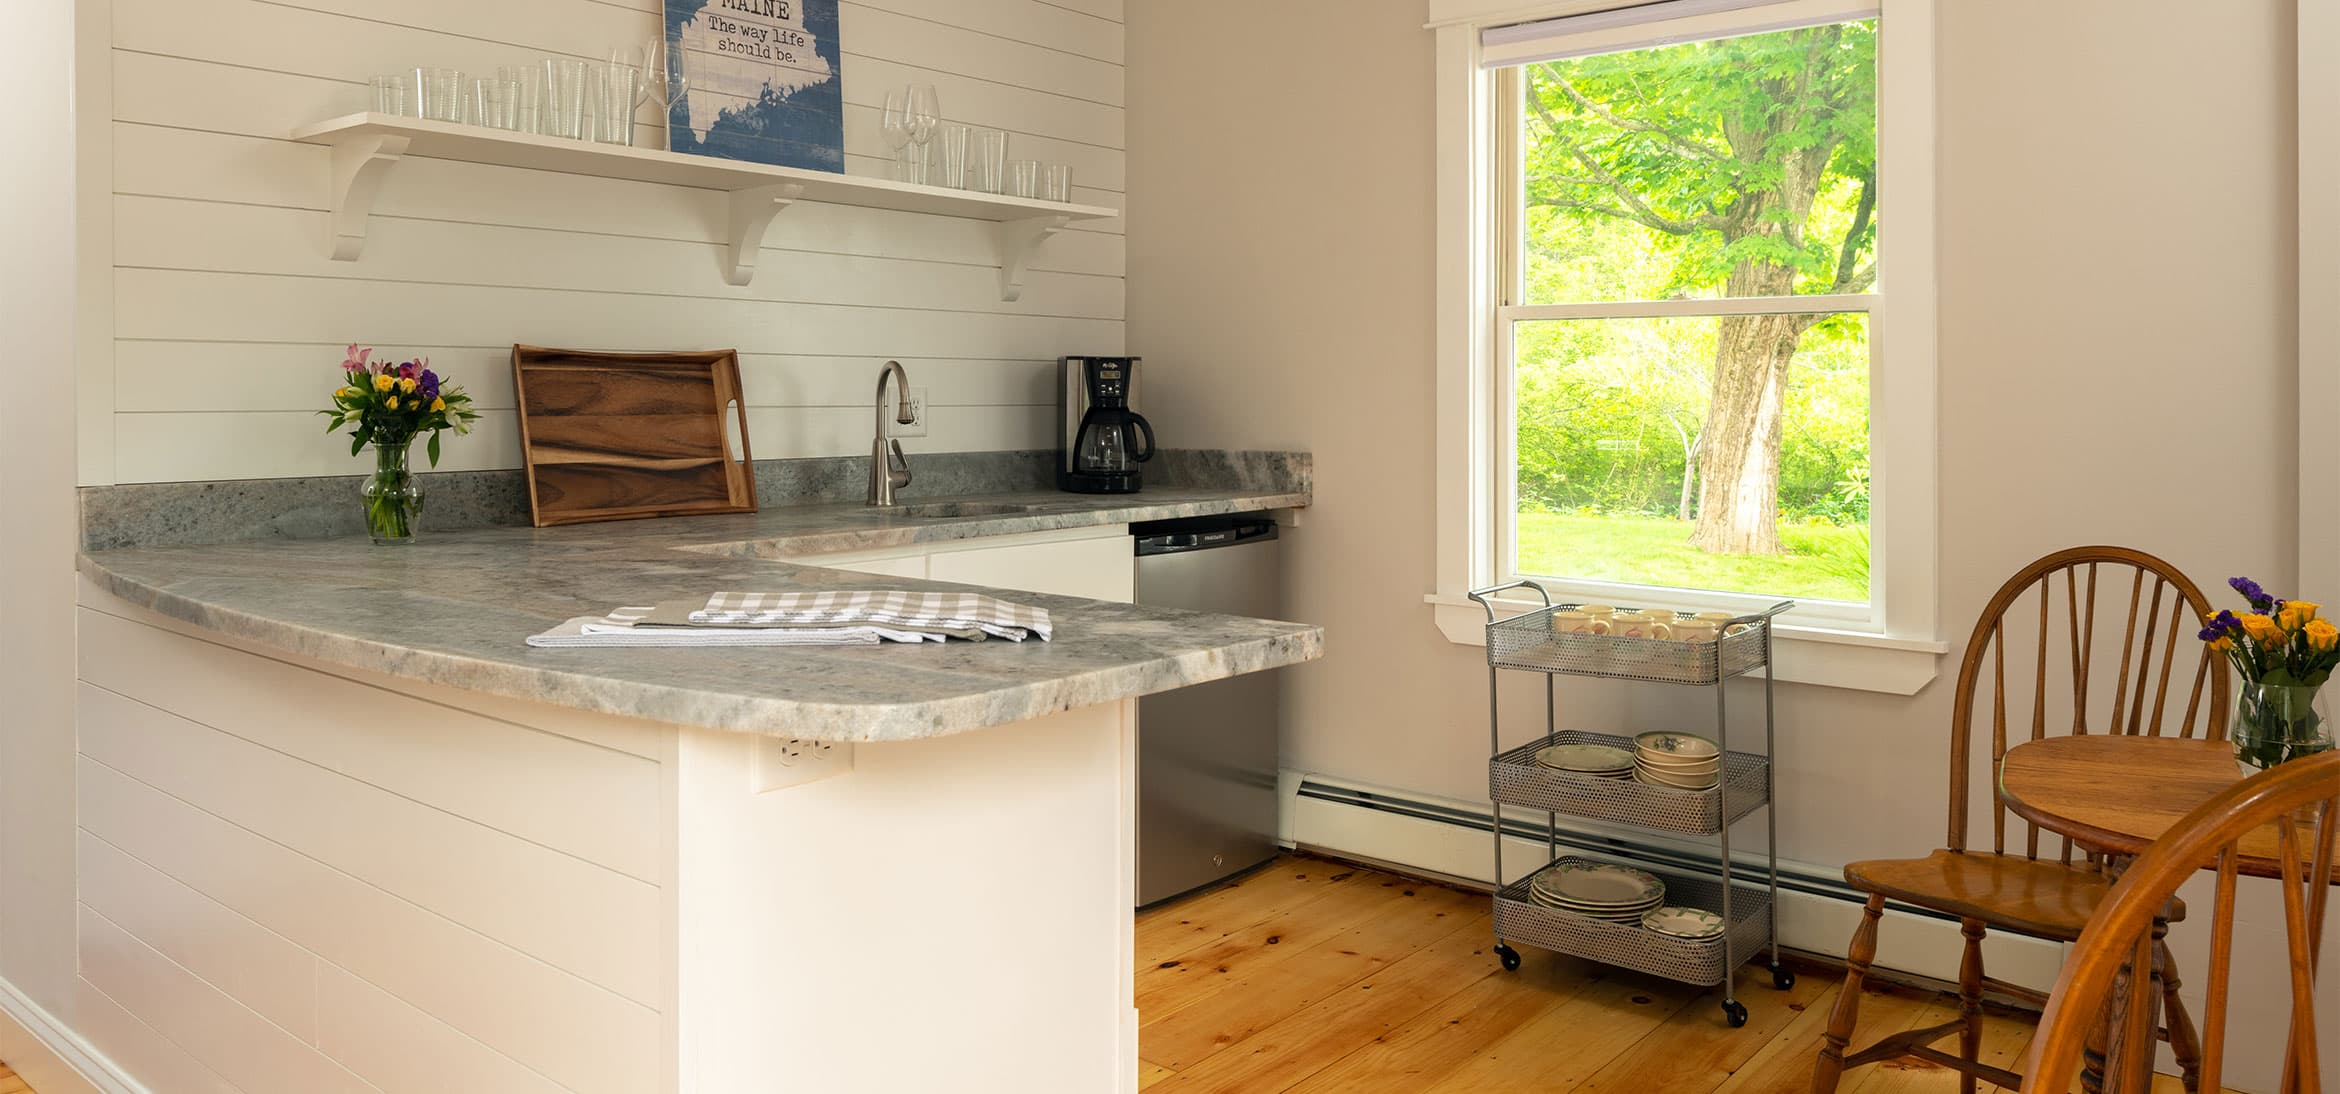 A complete L-shaped kitchen with a dining table and window with a garden view